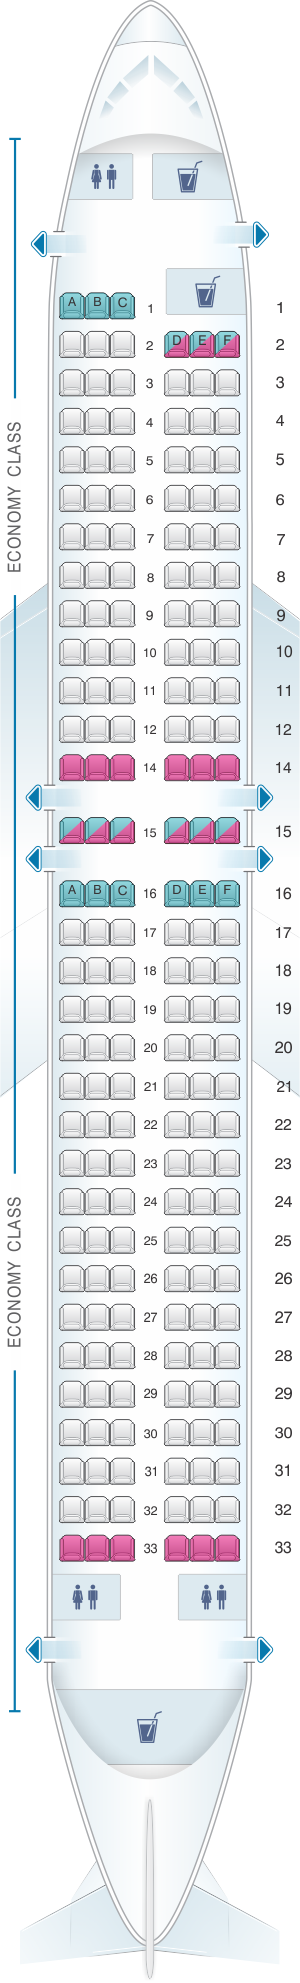 Seat map for Jet2 Boeing B737-800